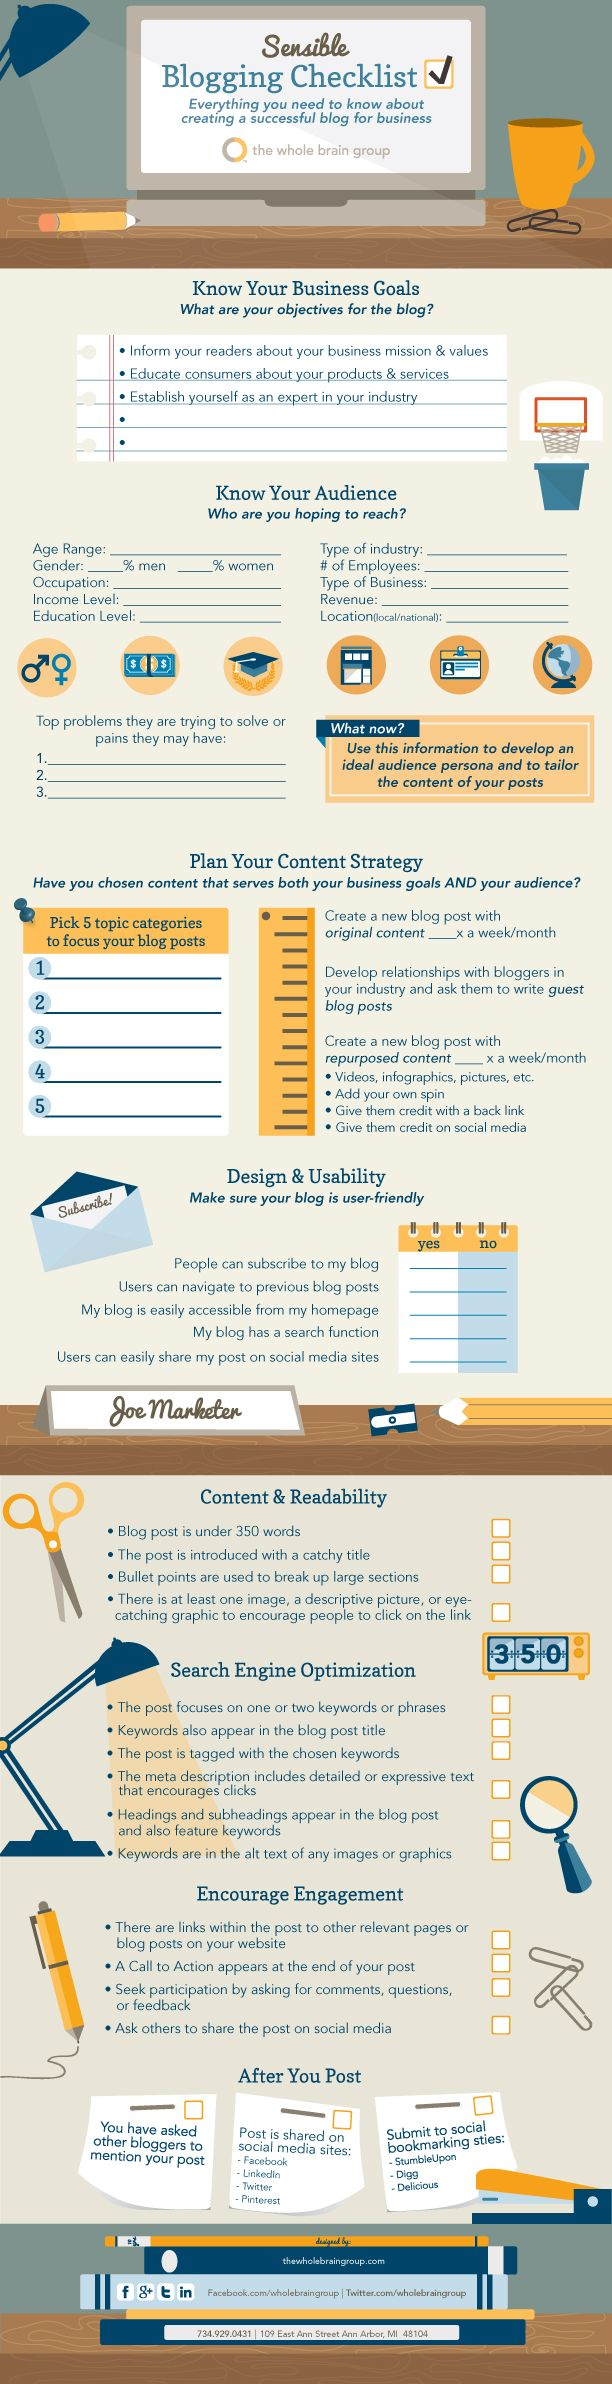 BUSINESS BLOG - Checklist [INFOGRAPHIC] - A sensible blogging checklist for successful business blogs.